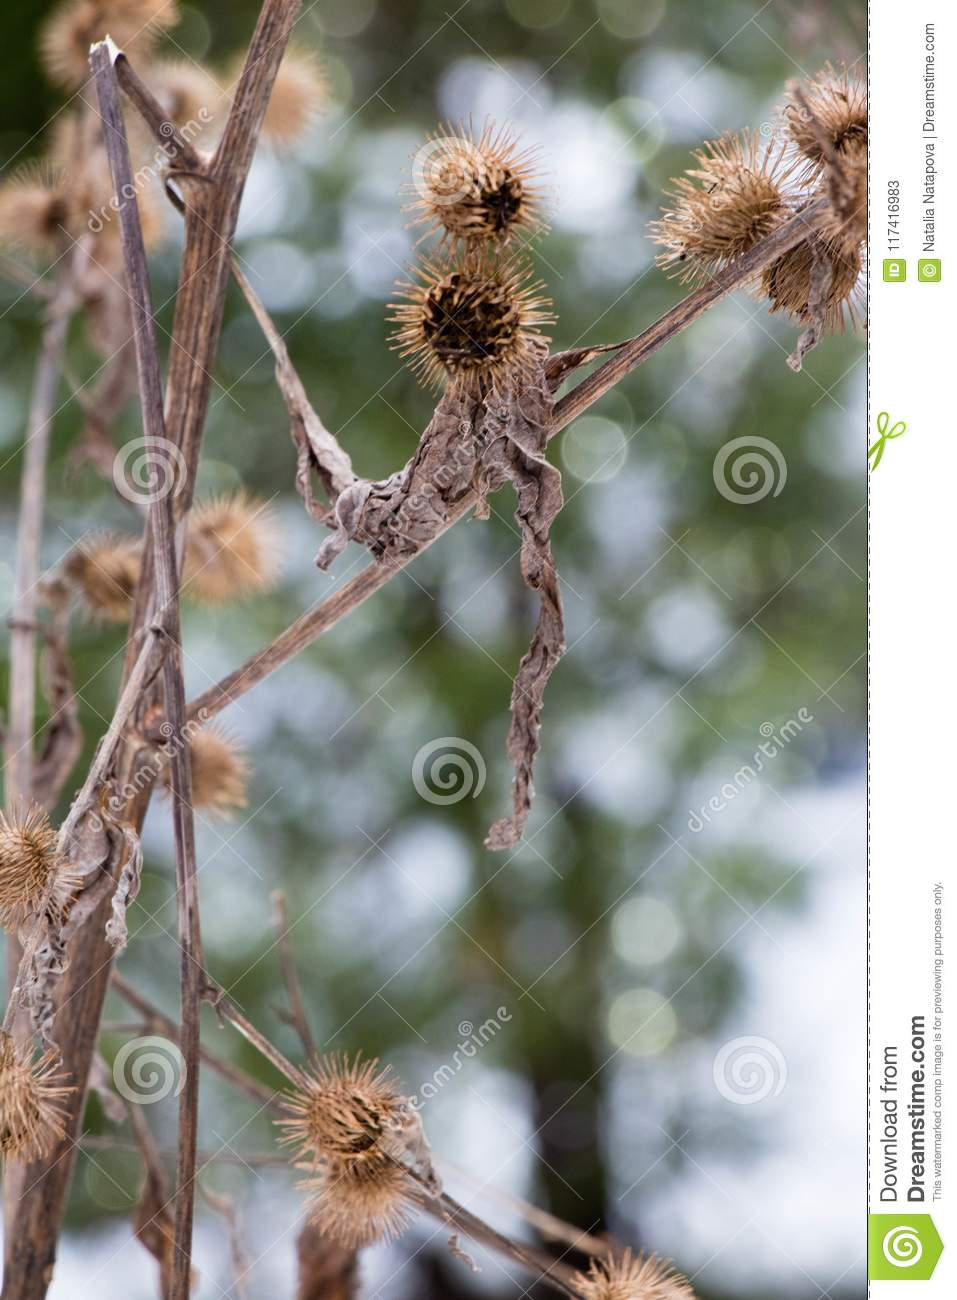 Hooked Burrs Of The Burdock Plant In Winter Stock Image - Image of